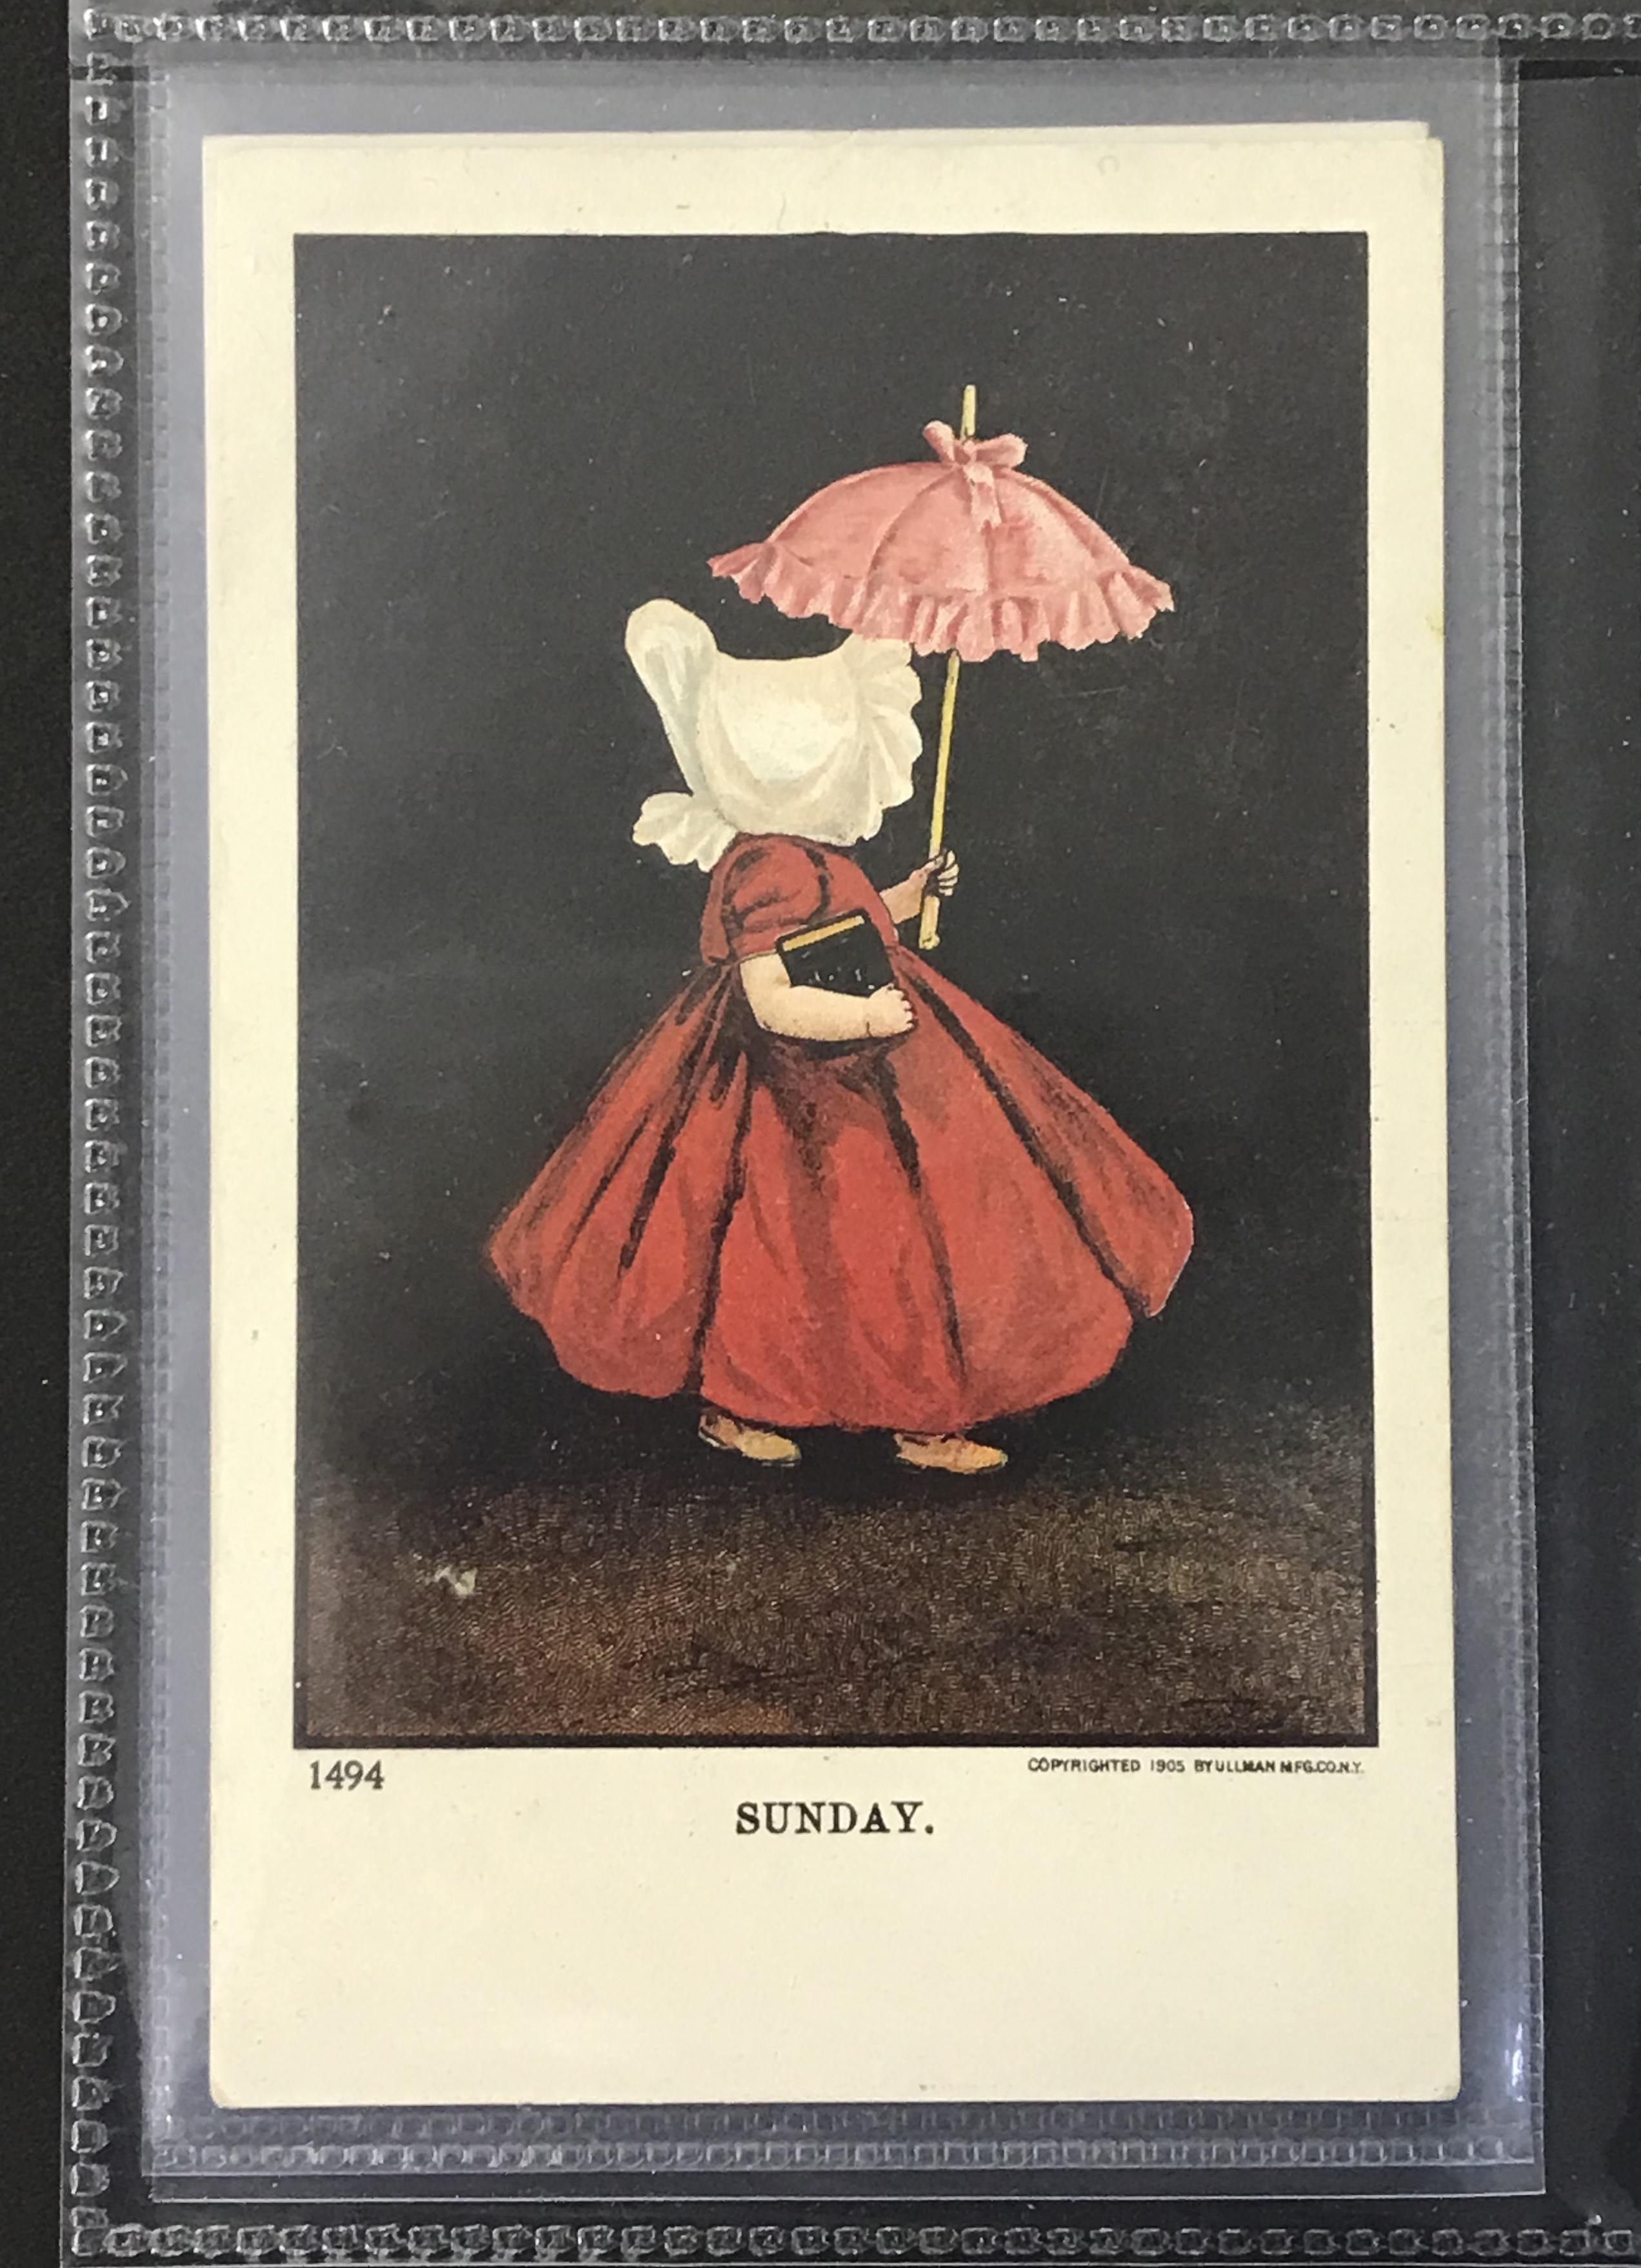 Ullman Manufacturing Co. Postcards - Complete set of Sunbonnet Baby Days - Image 10 of 11